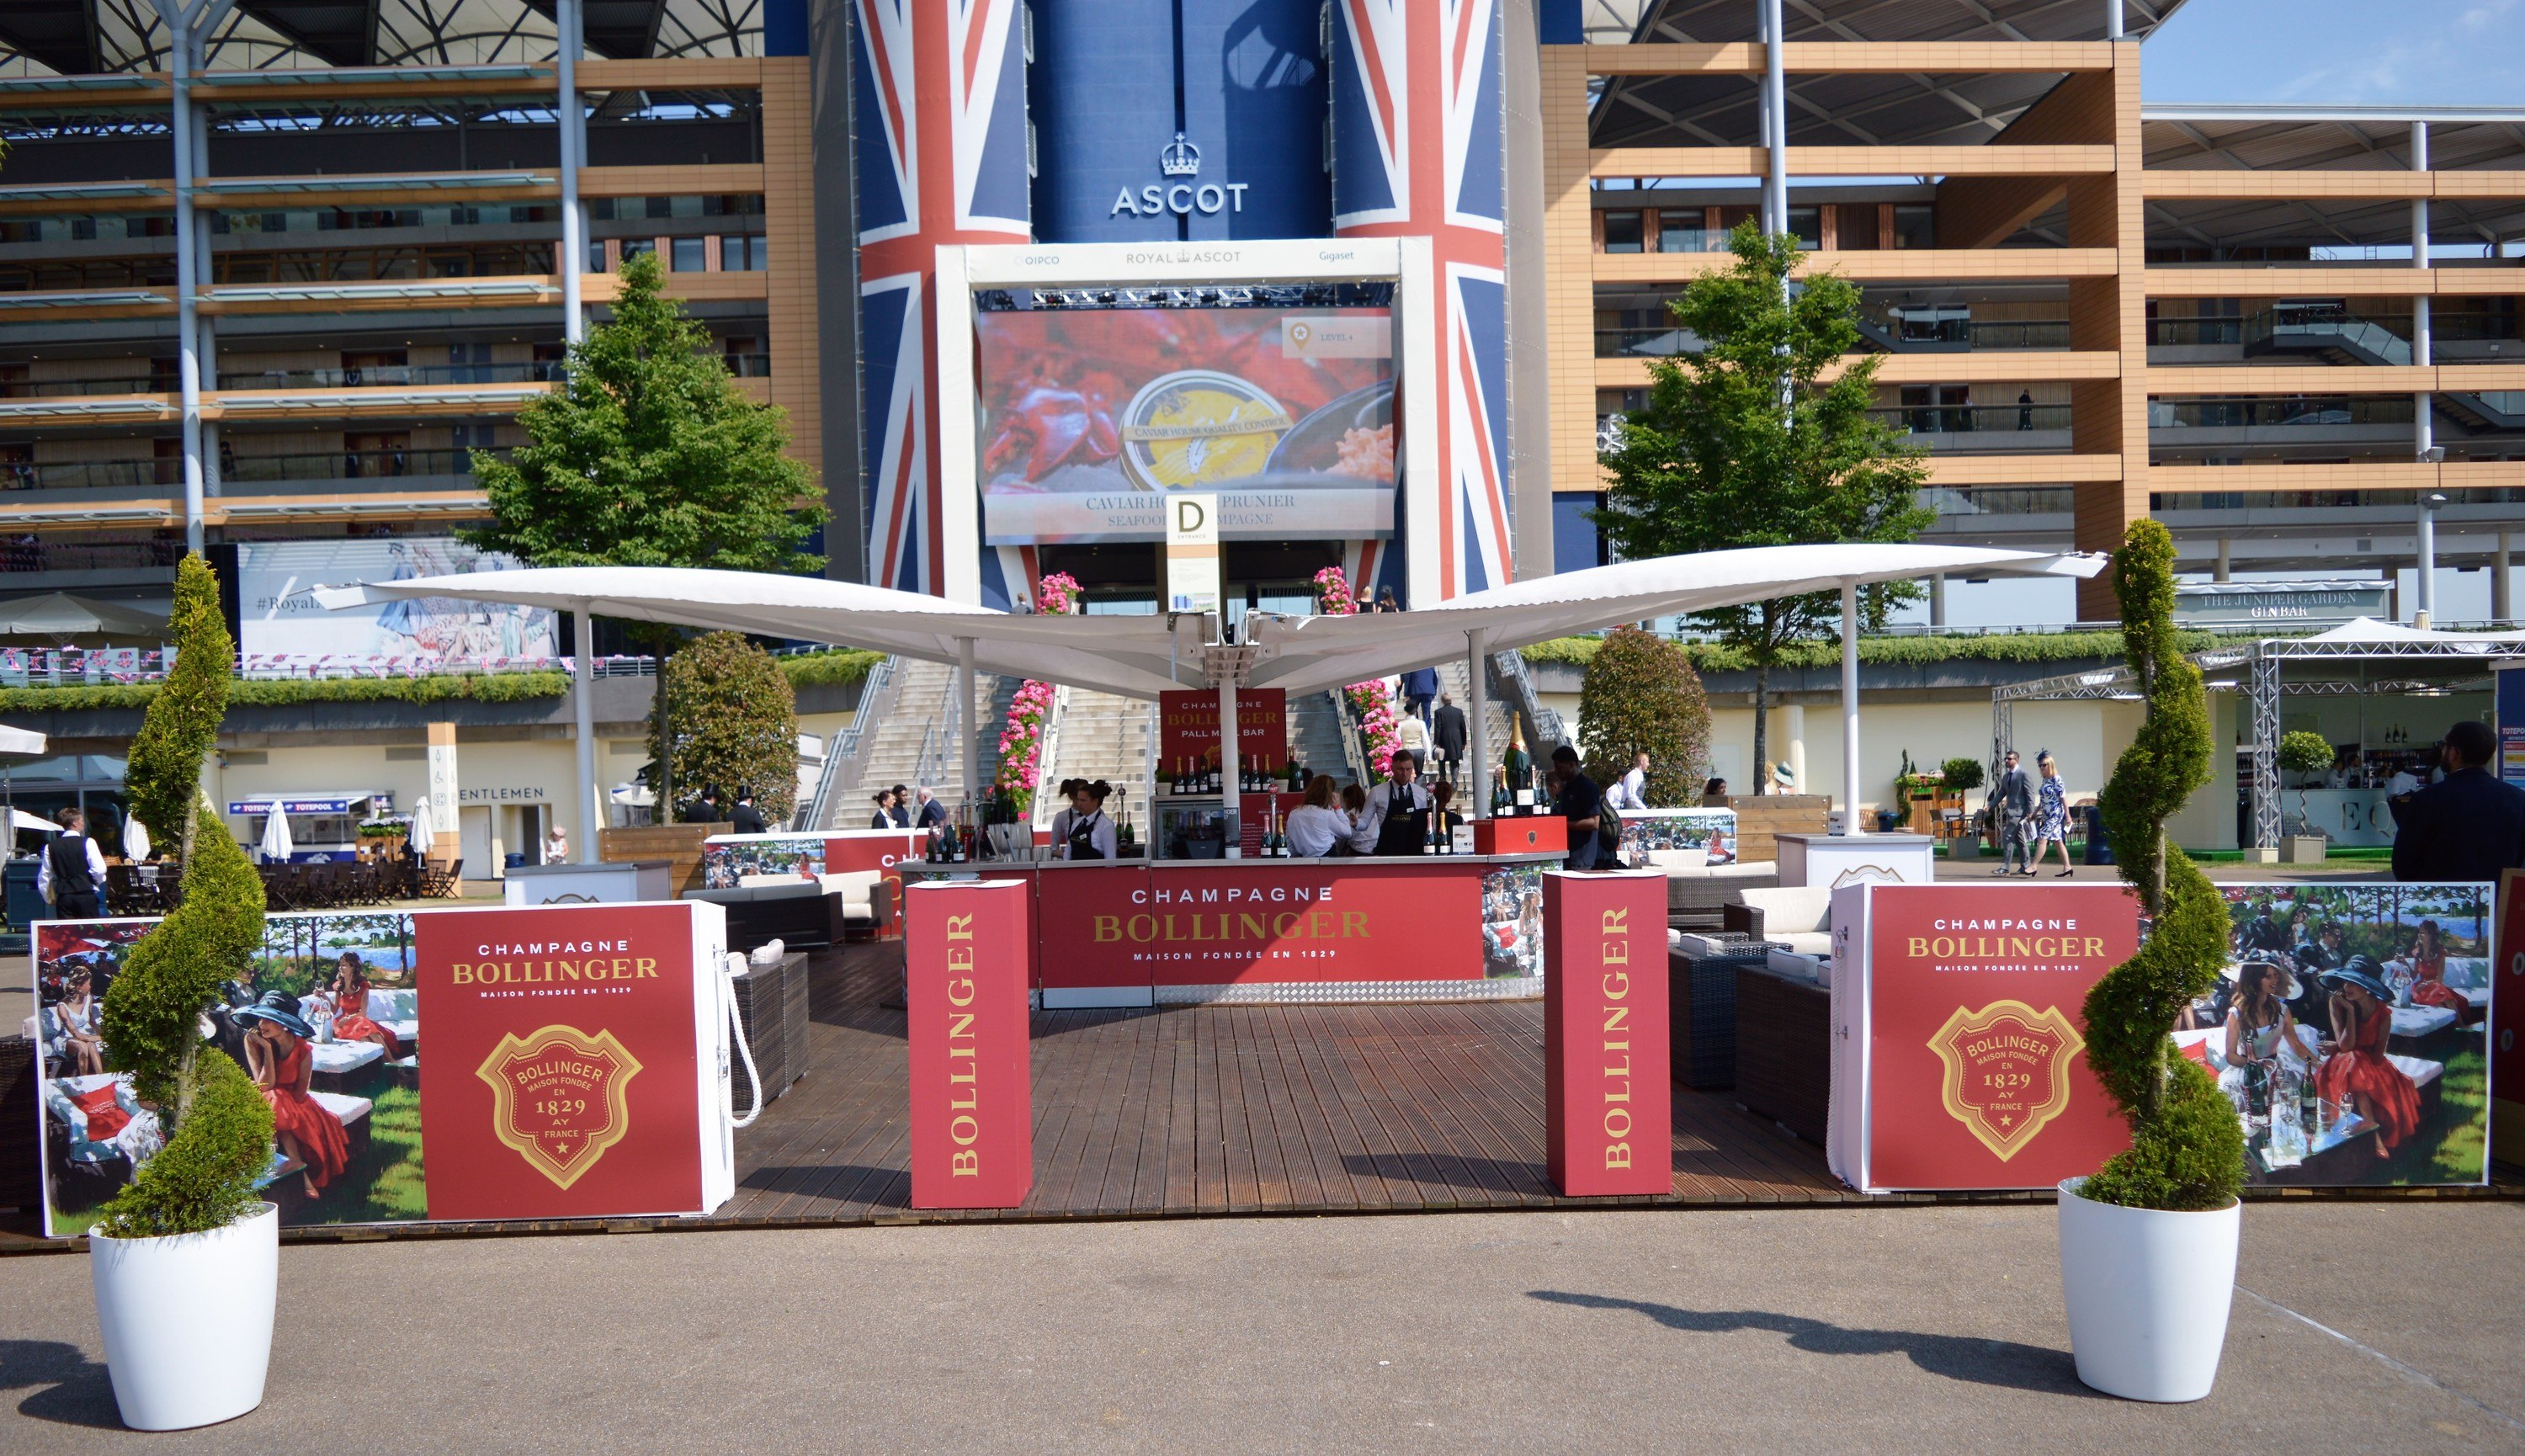 <p>Event, Mobile & Stadia Bars – Sail & Canopy Bar.</p> <p> </p> <p>Stylish Bollinger Champagne Bar Centre Piece.  Ideally suited as a centre piece outdoor event bar serving premium champagne or other premium drinks brands at high profile sporting events including Royal Ascot, Cricket at Lords.</p> <p> </p> <p>Bespoke Design and Manufacture in UK to meet customer individual requirements</p>